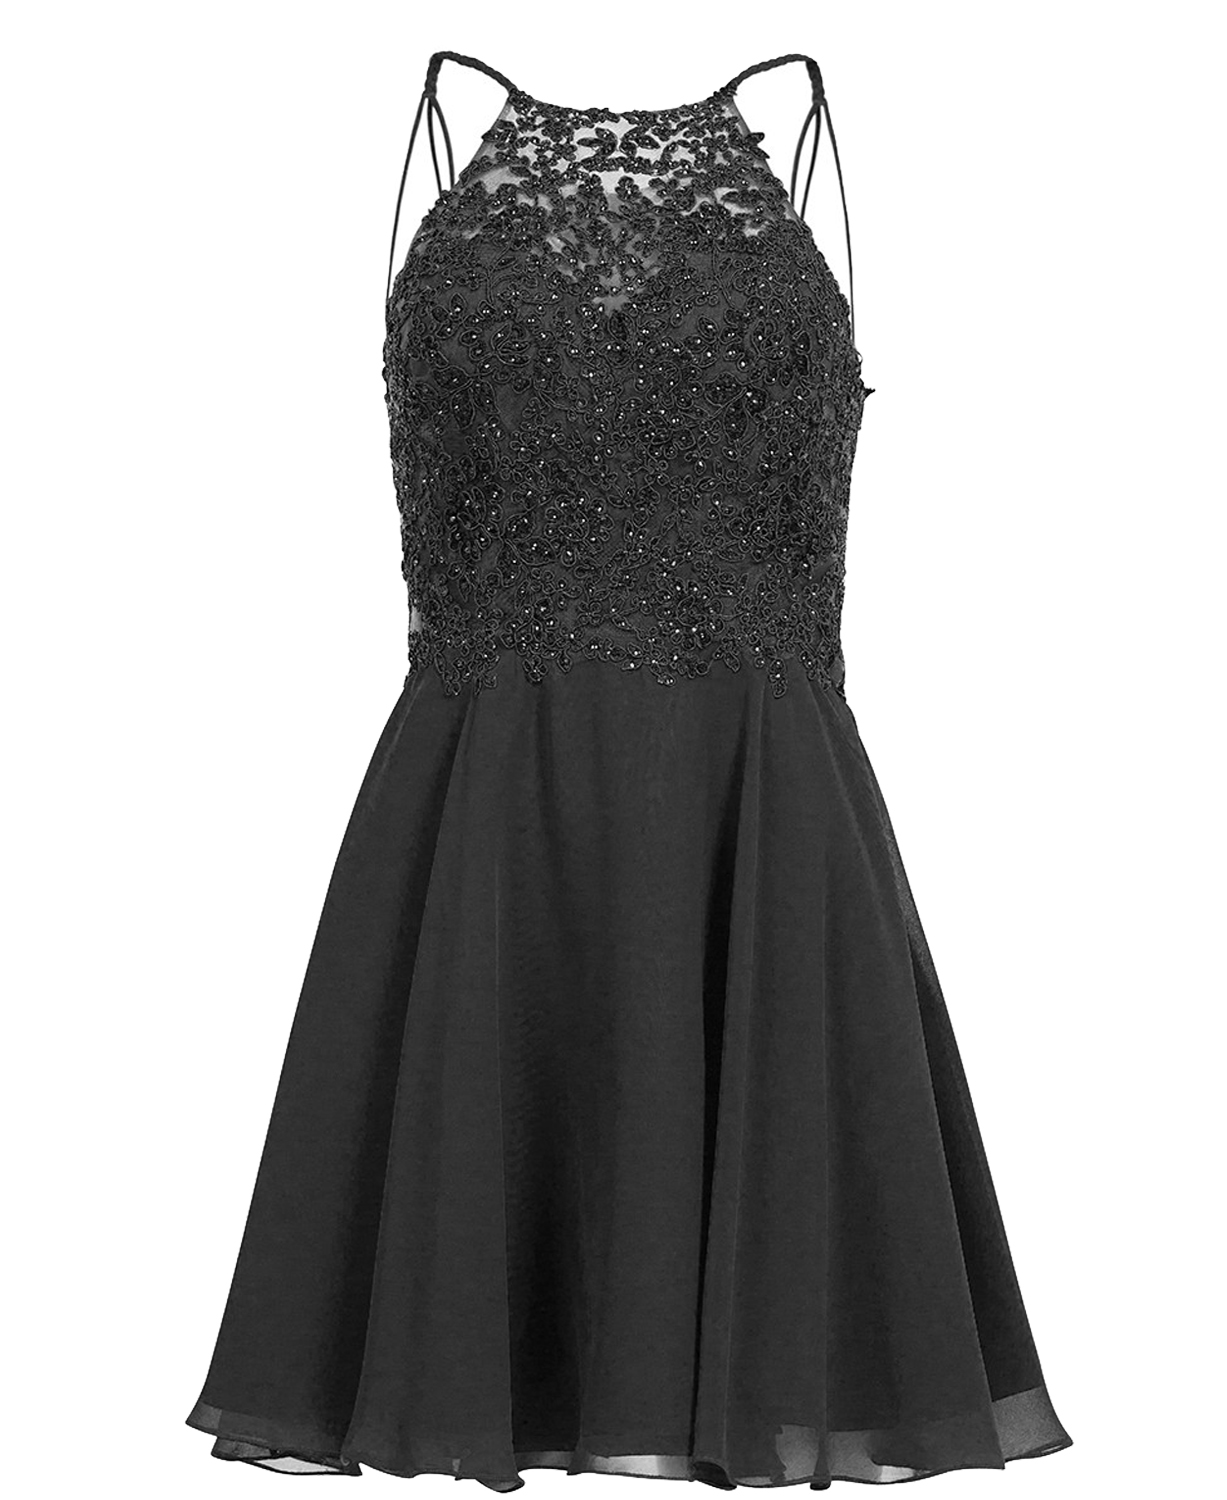 V Back Long Chiffon Short Lace Black Homecoming Dress-a Line Short Lace Black Prom Party Gown-chiffon Elegant Sexy Lace Evening Gown